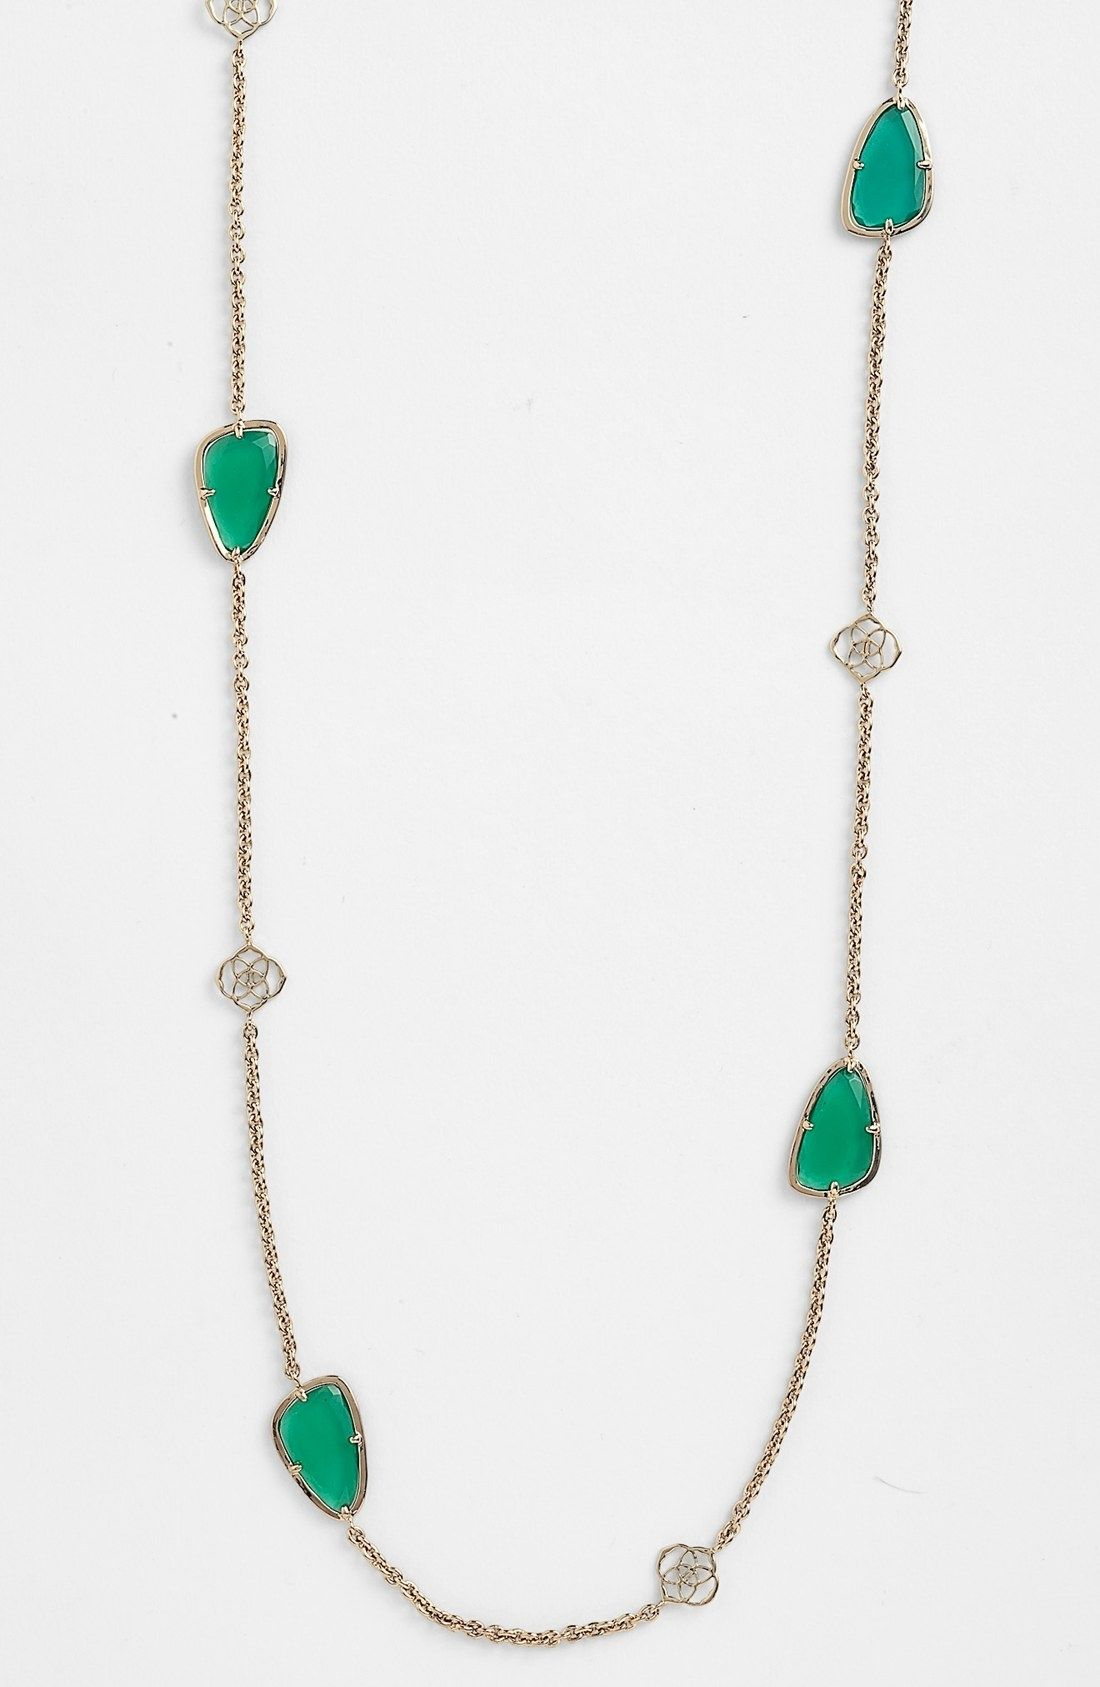 7ded50afc Kendra Scott Kinley Long Station Necklace with Logos, Gold and Green. Get  the lowest price on New! Kendra Scott Kinley Long Station Necklace with  Logos, ...